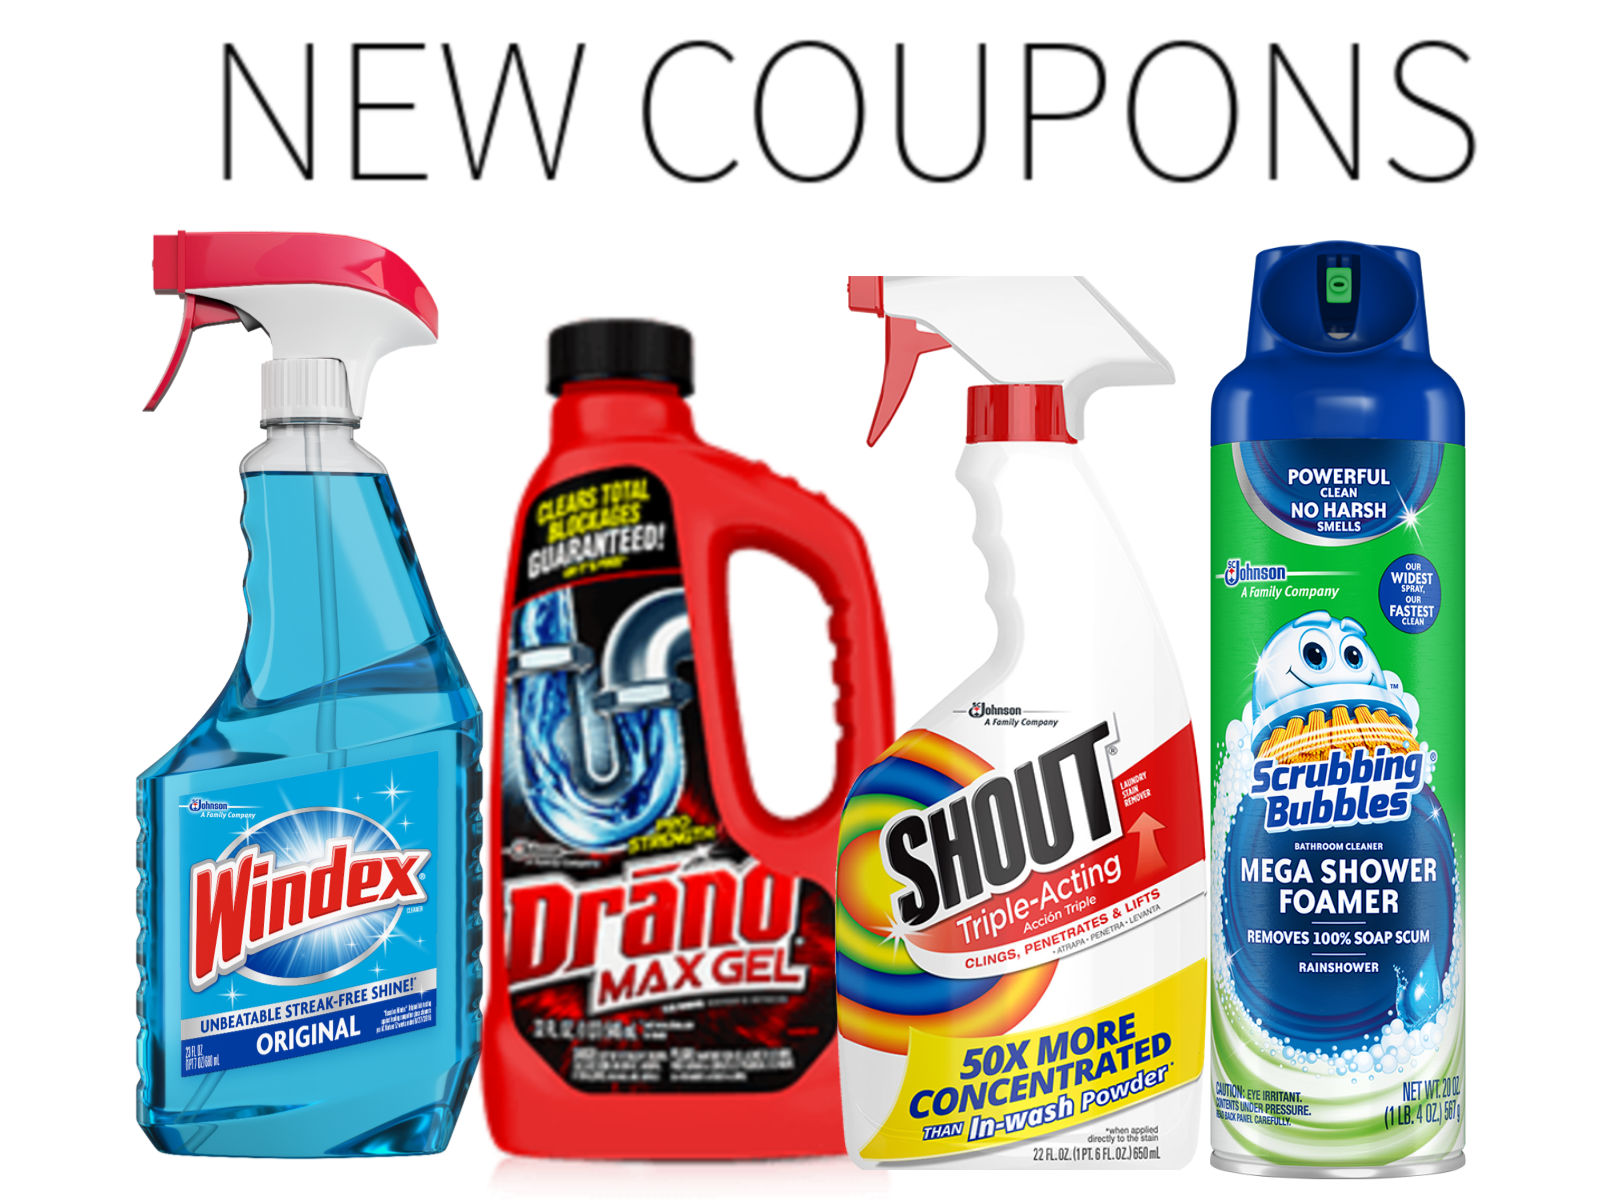 New Household Coupons - Shout, Drano, Scrubbing Bubbles, Windex & More! on I Heart Publix